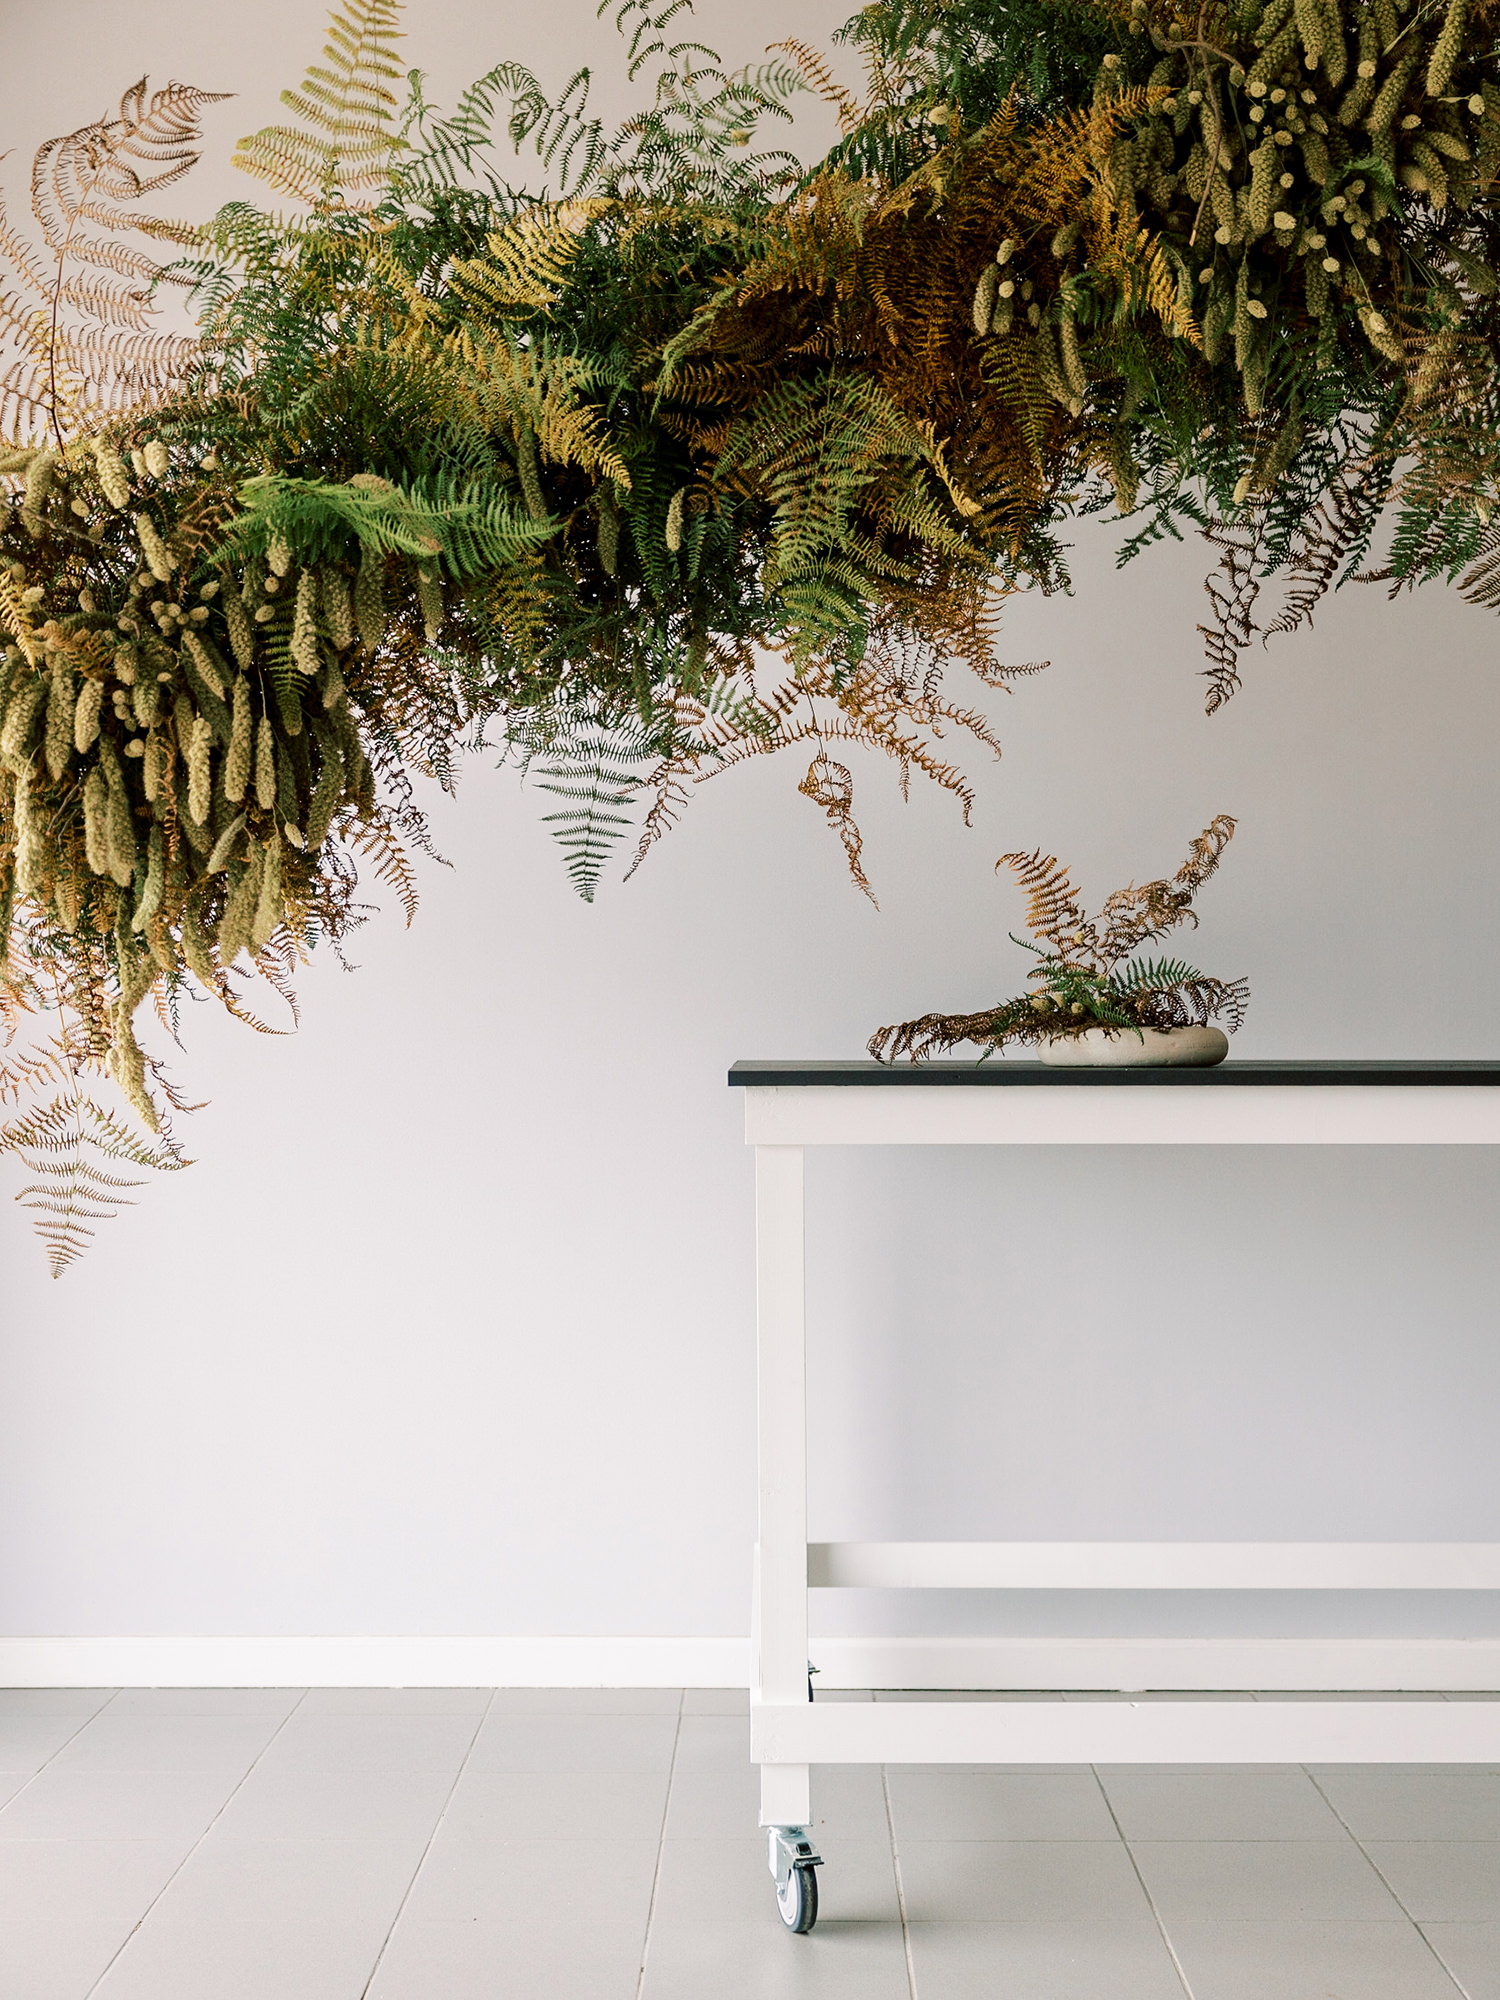 FLoral design using ferns and dried flowers and with no floral foam